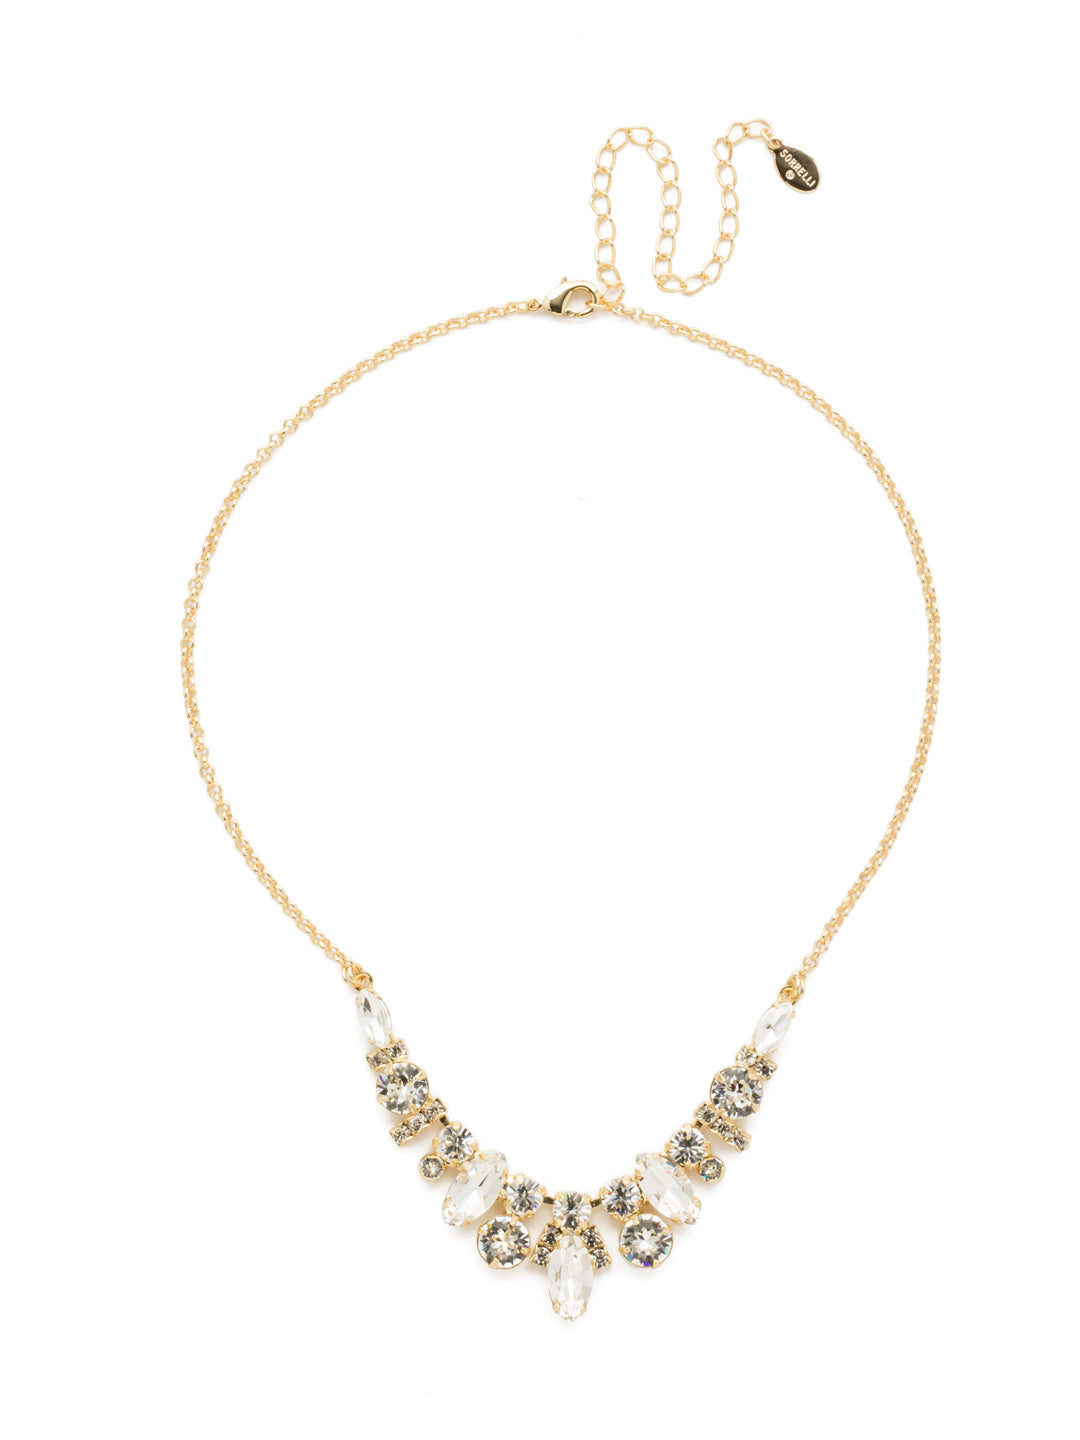 Noveau Navette Statement Necklace - NDG90BGCRY